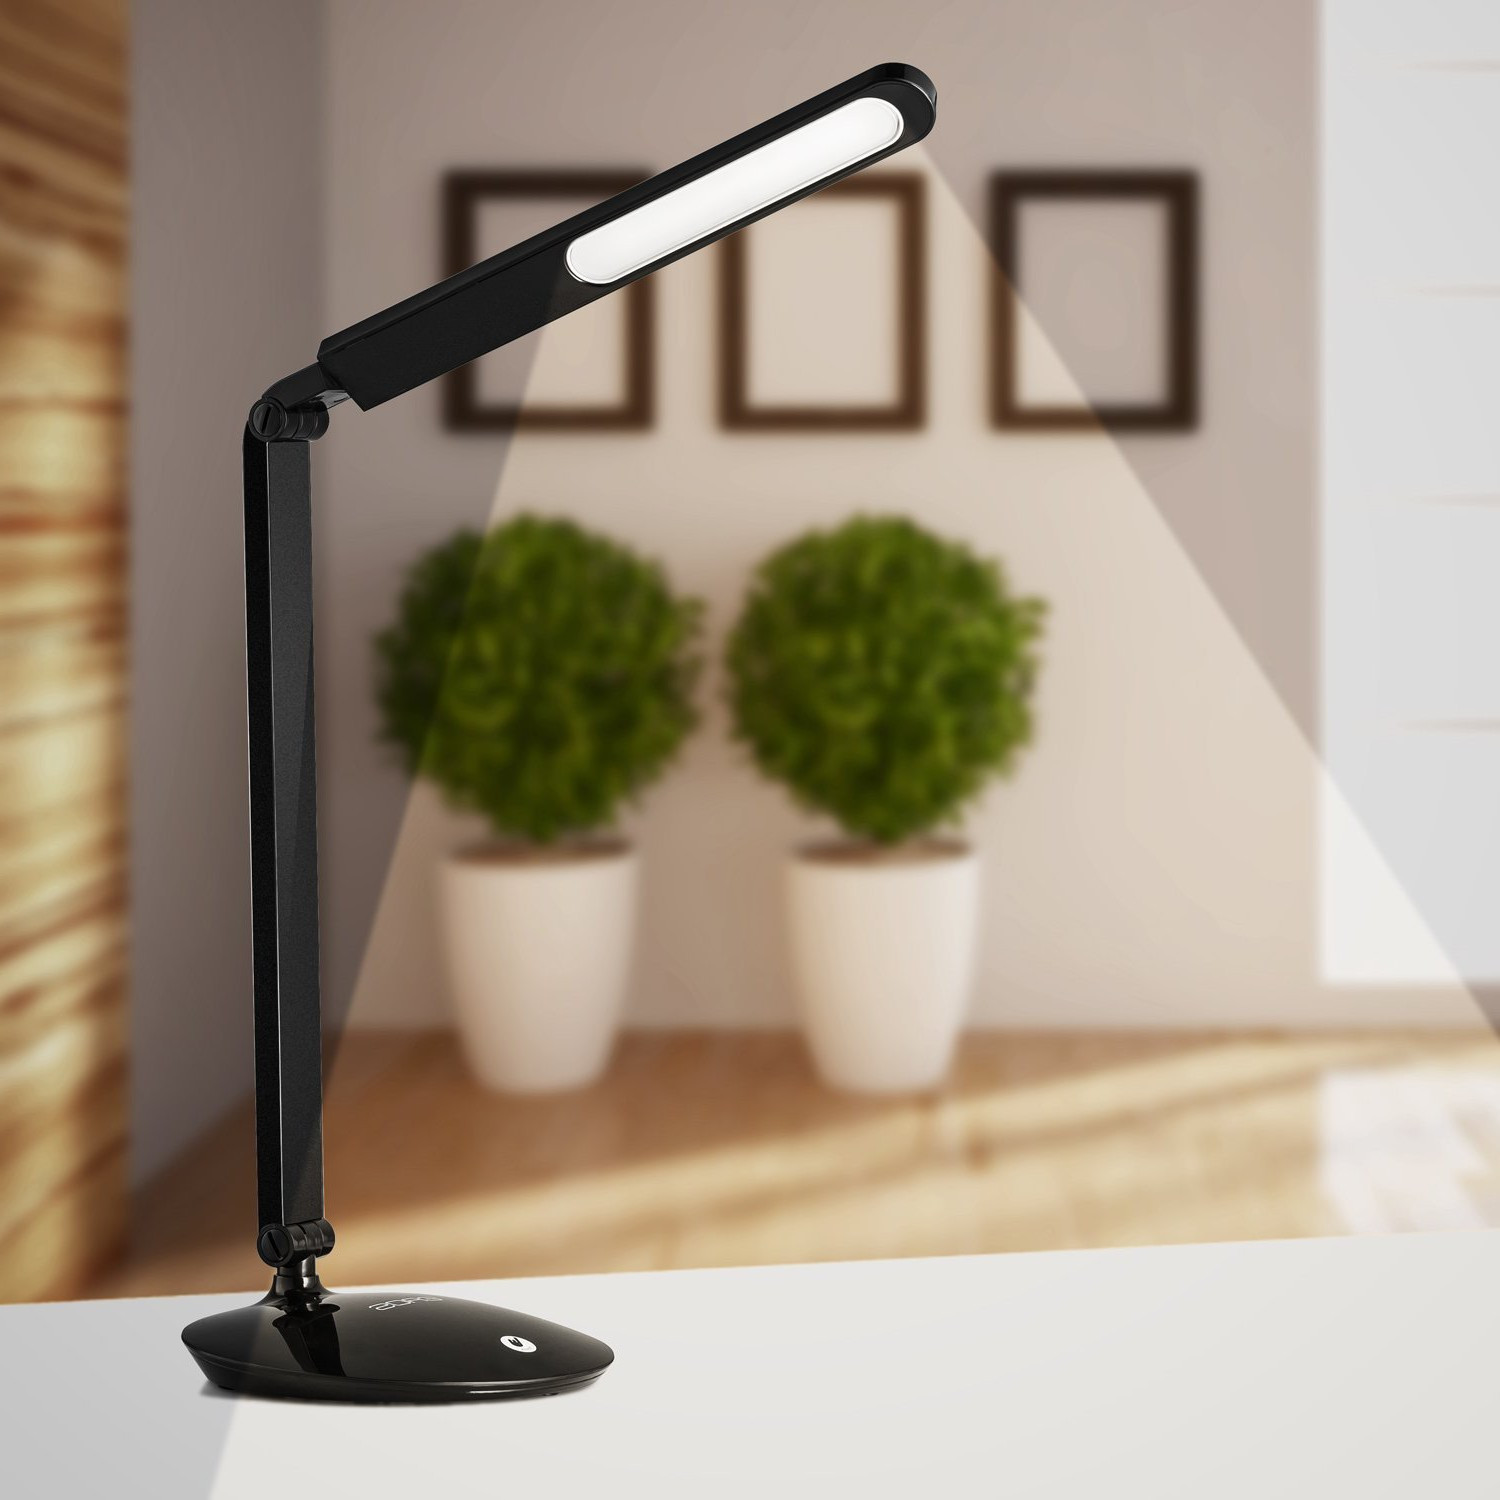 Best ideas about Desk Lamps Amazon . Save or Pin Elegant Desk Lamp Amazon Lightaccents Led Desk Lamp Now.